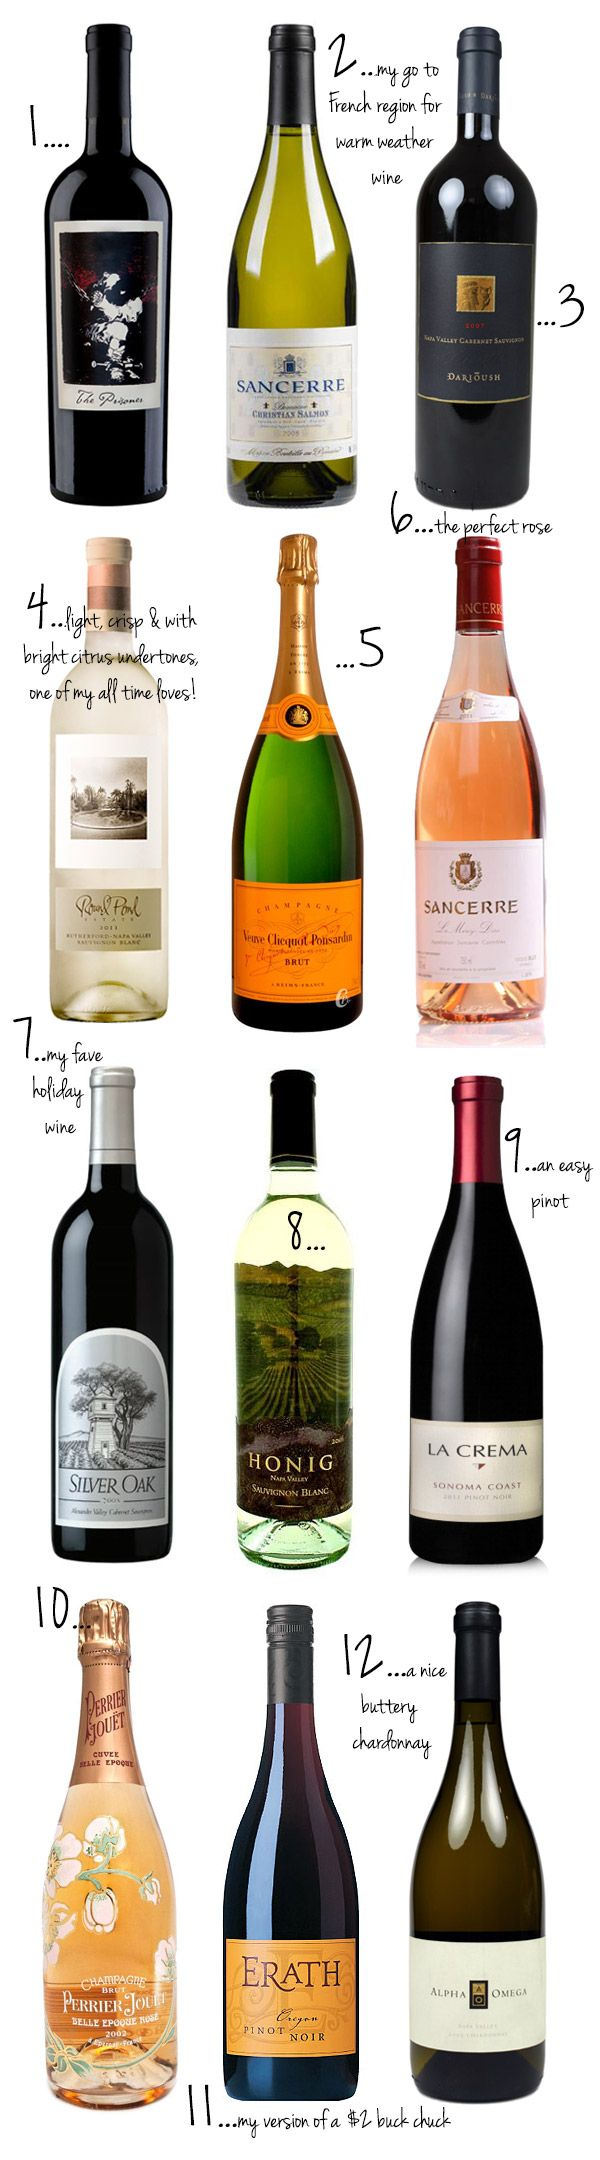 12 great wines